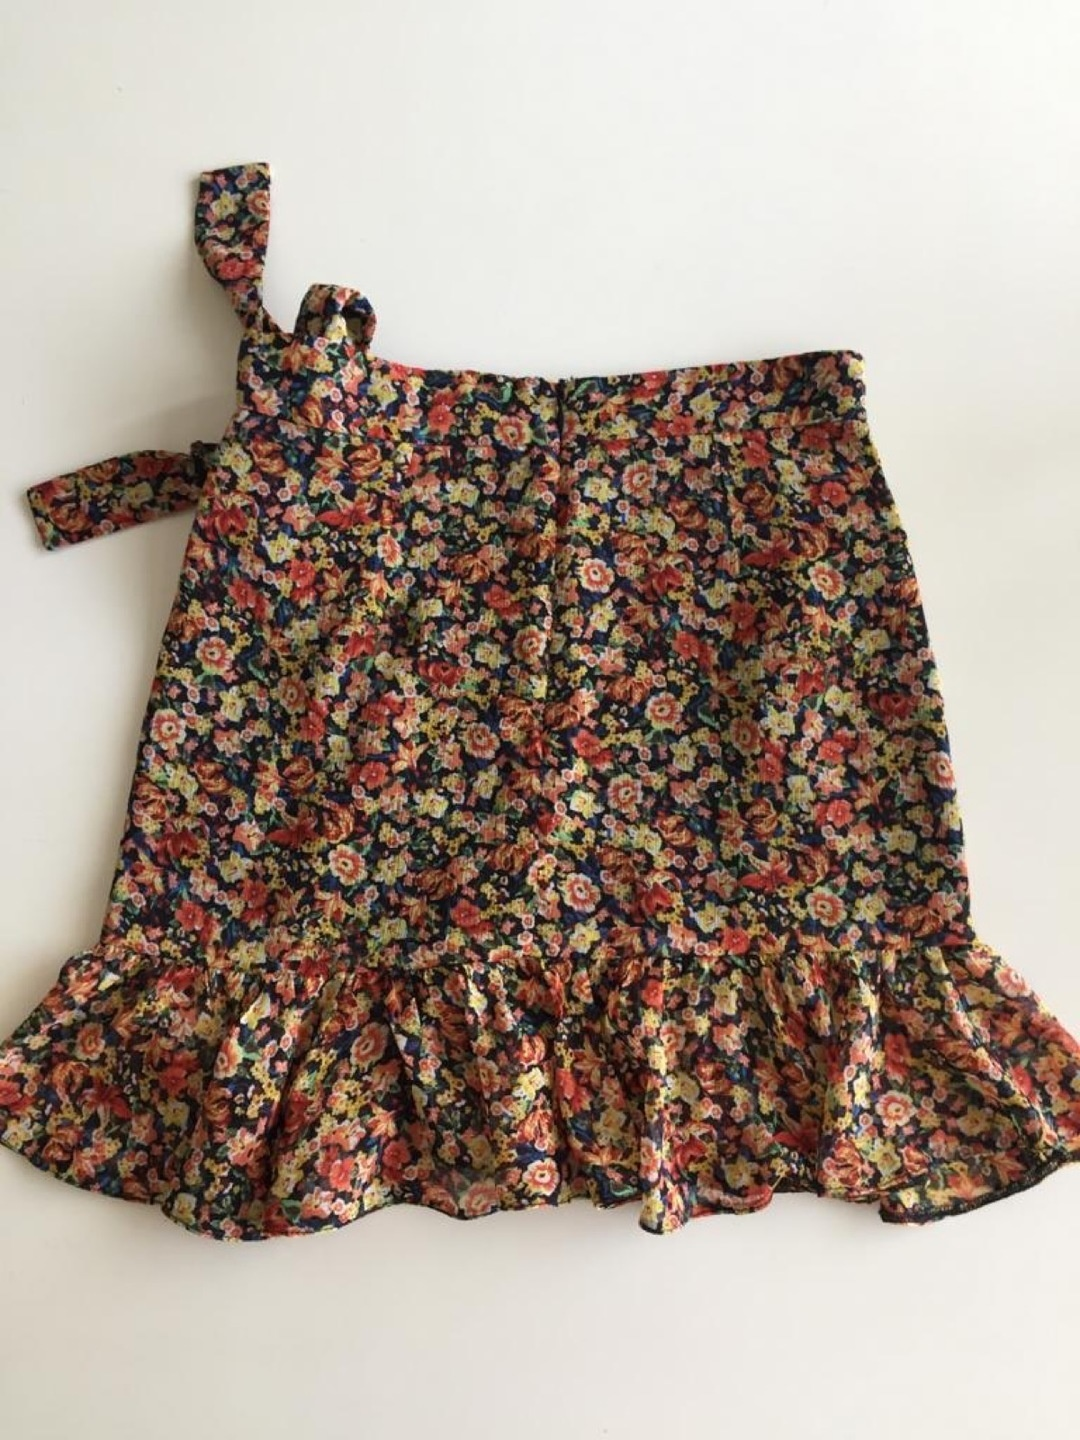 Women's skirts - URBAN OUTFITTERS photo 4